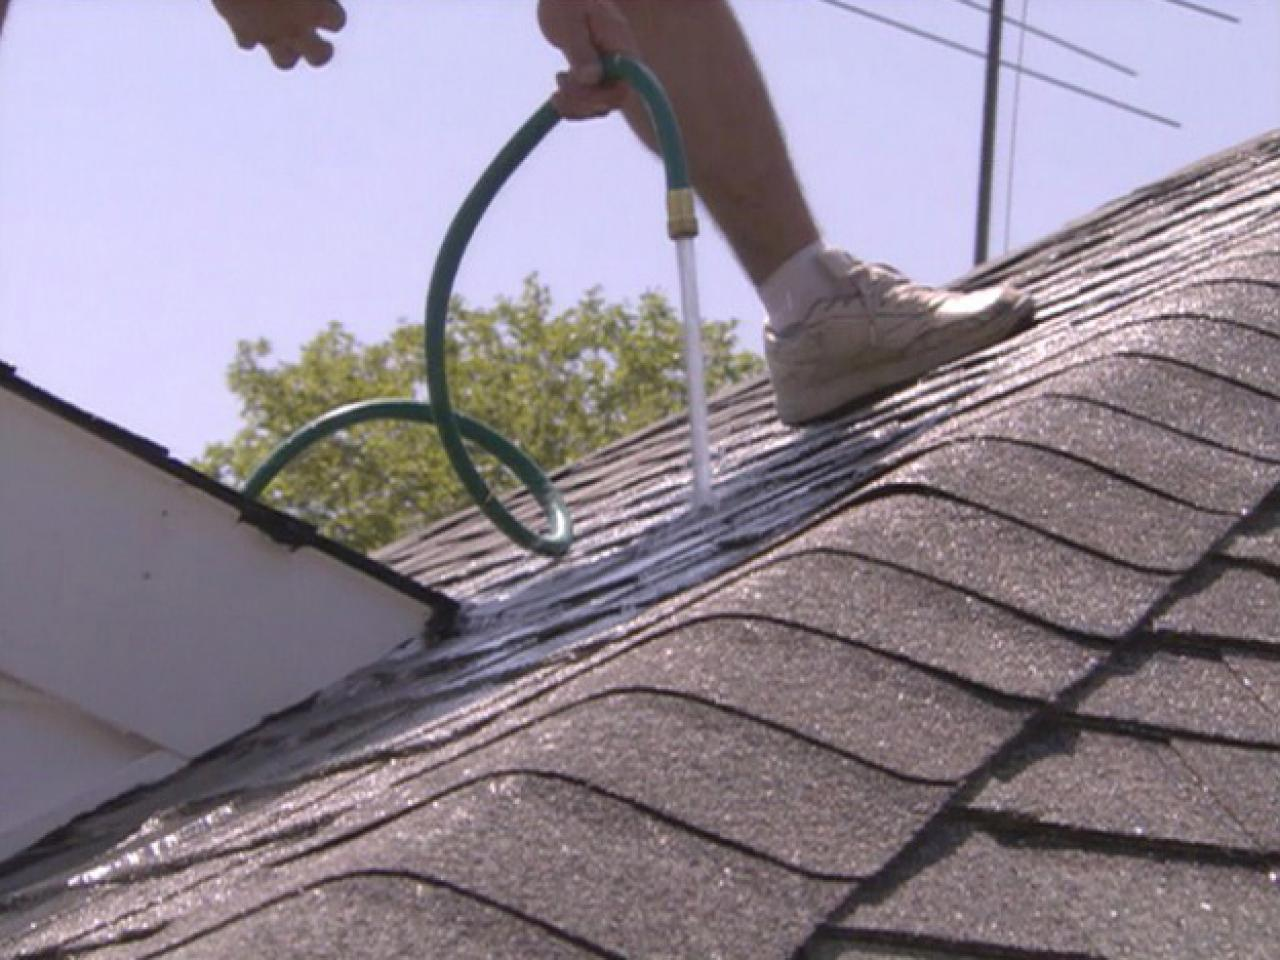 Best Shoes for Roofing Plan